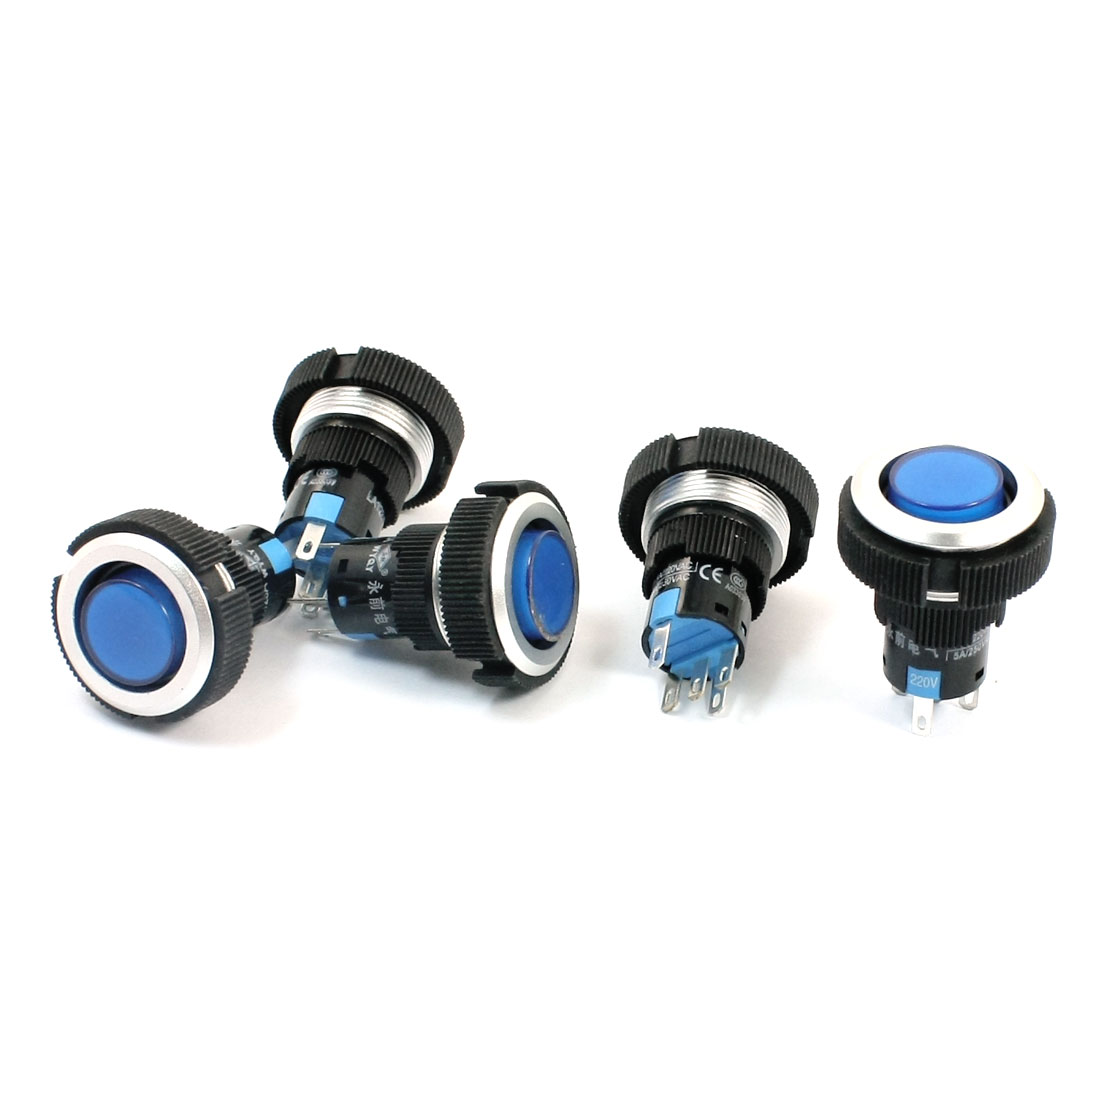 AC220V 22mm Dia Thread Panel Mount Blue Pilot Lamp SPDT 1NO 1NC Latching Plastic Push Button Switch 5Pcs